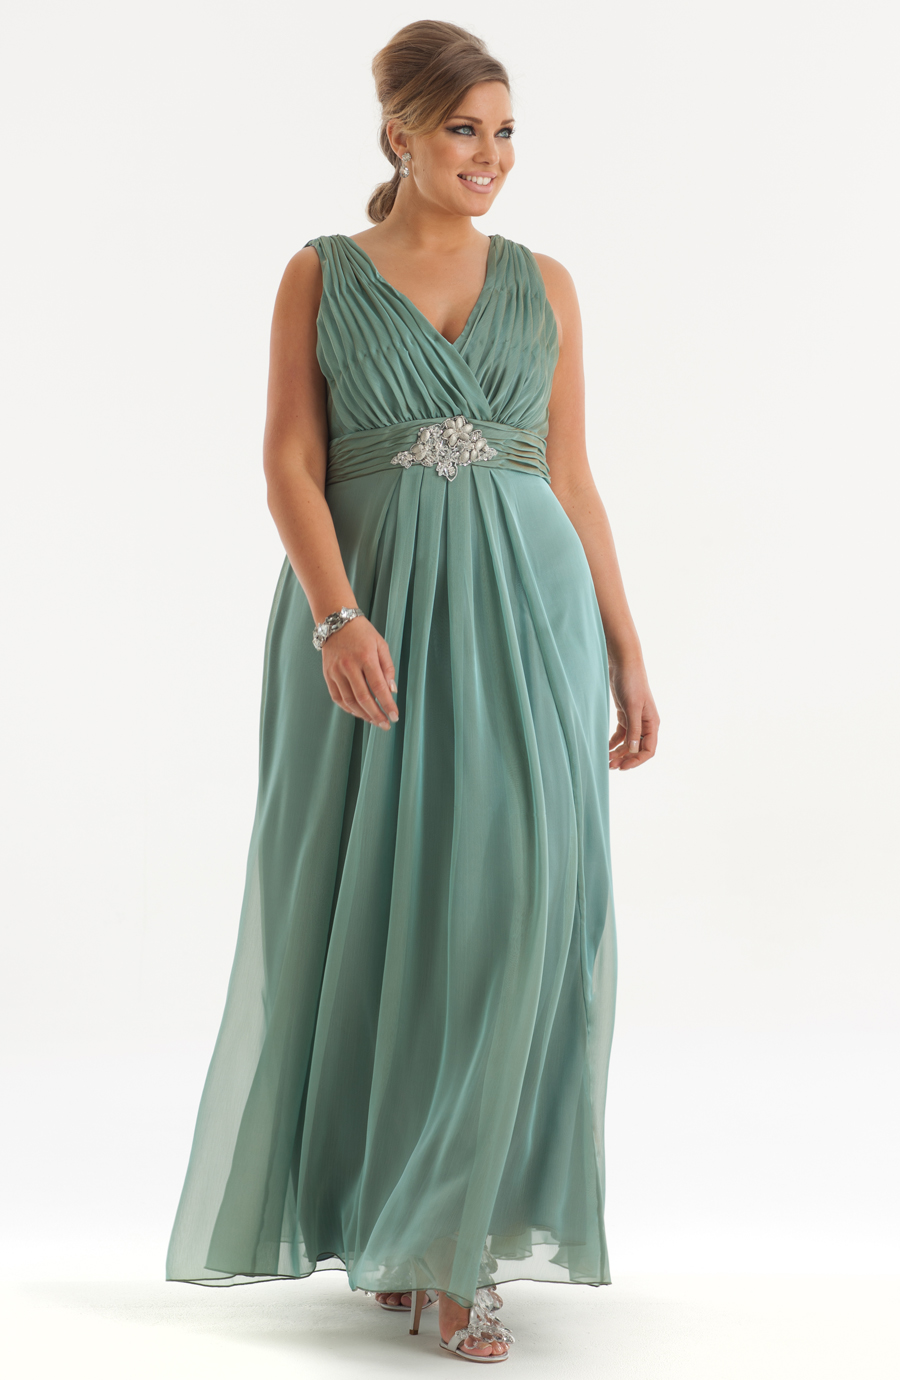 Plus Size Maternity Evening Dresses